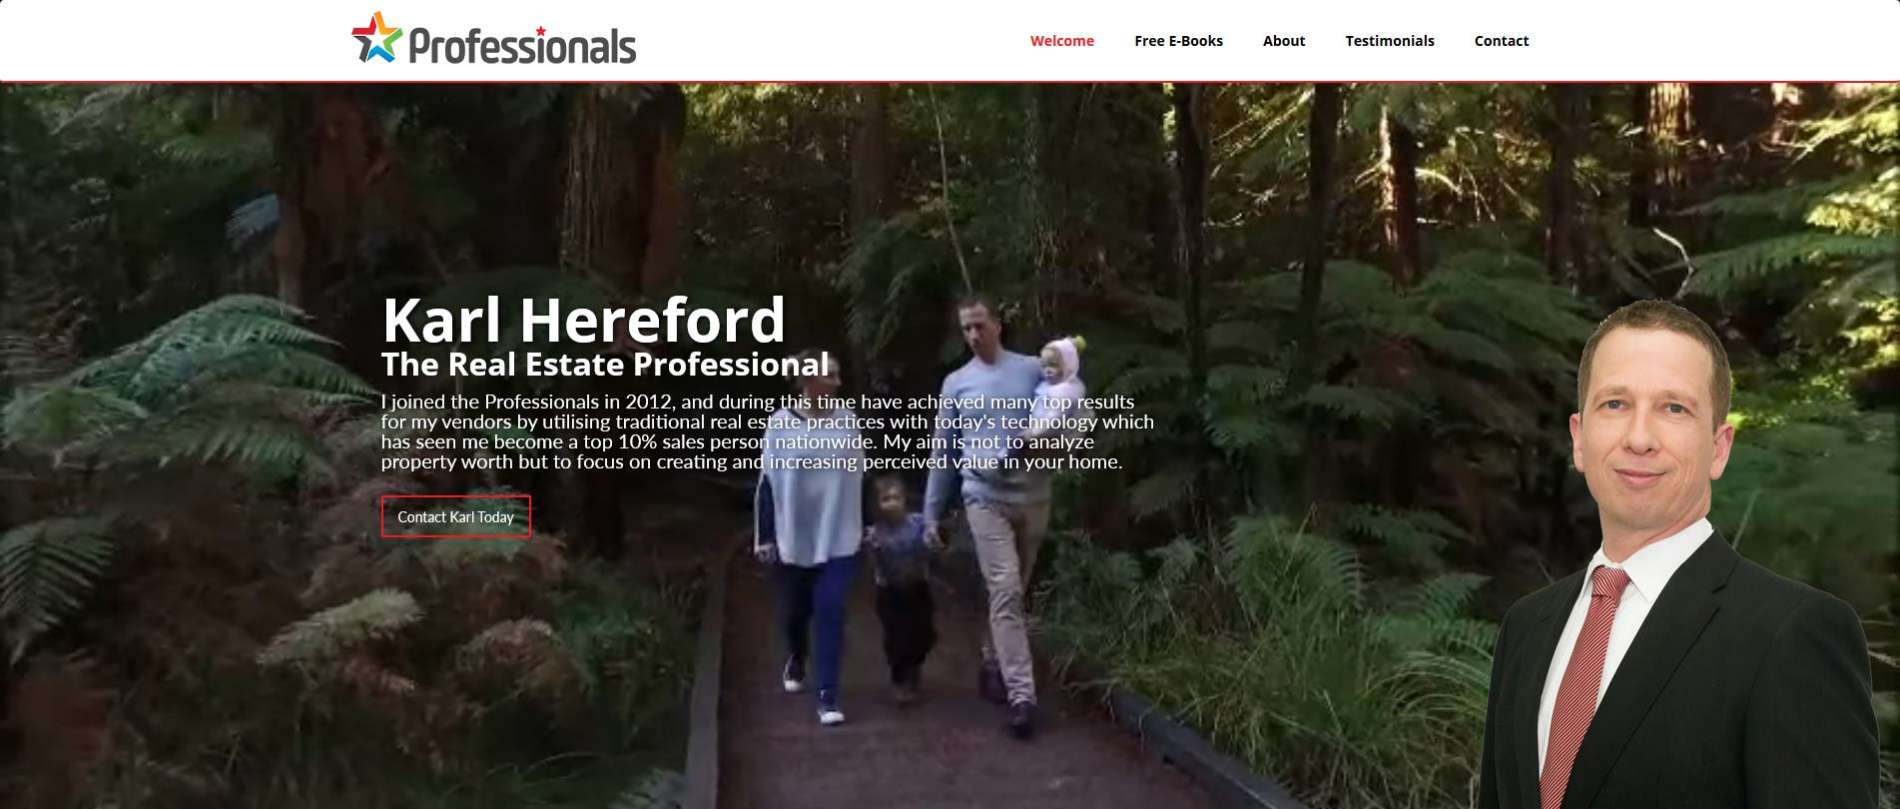 Karl Hereford – The Real Estate Professional